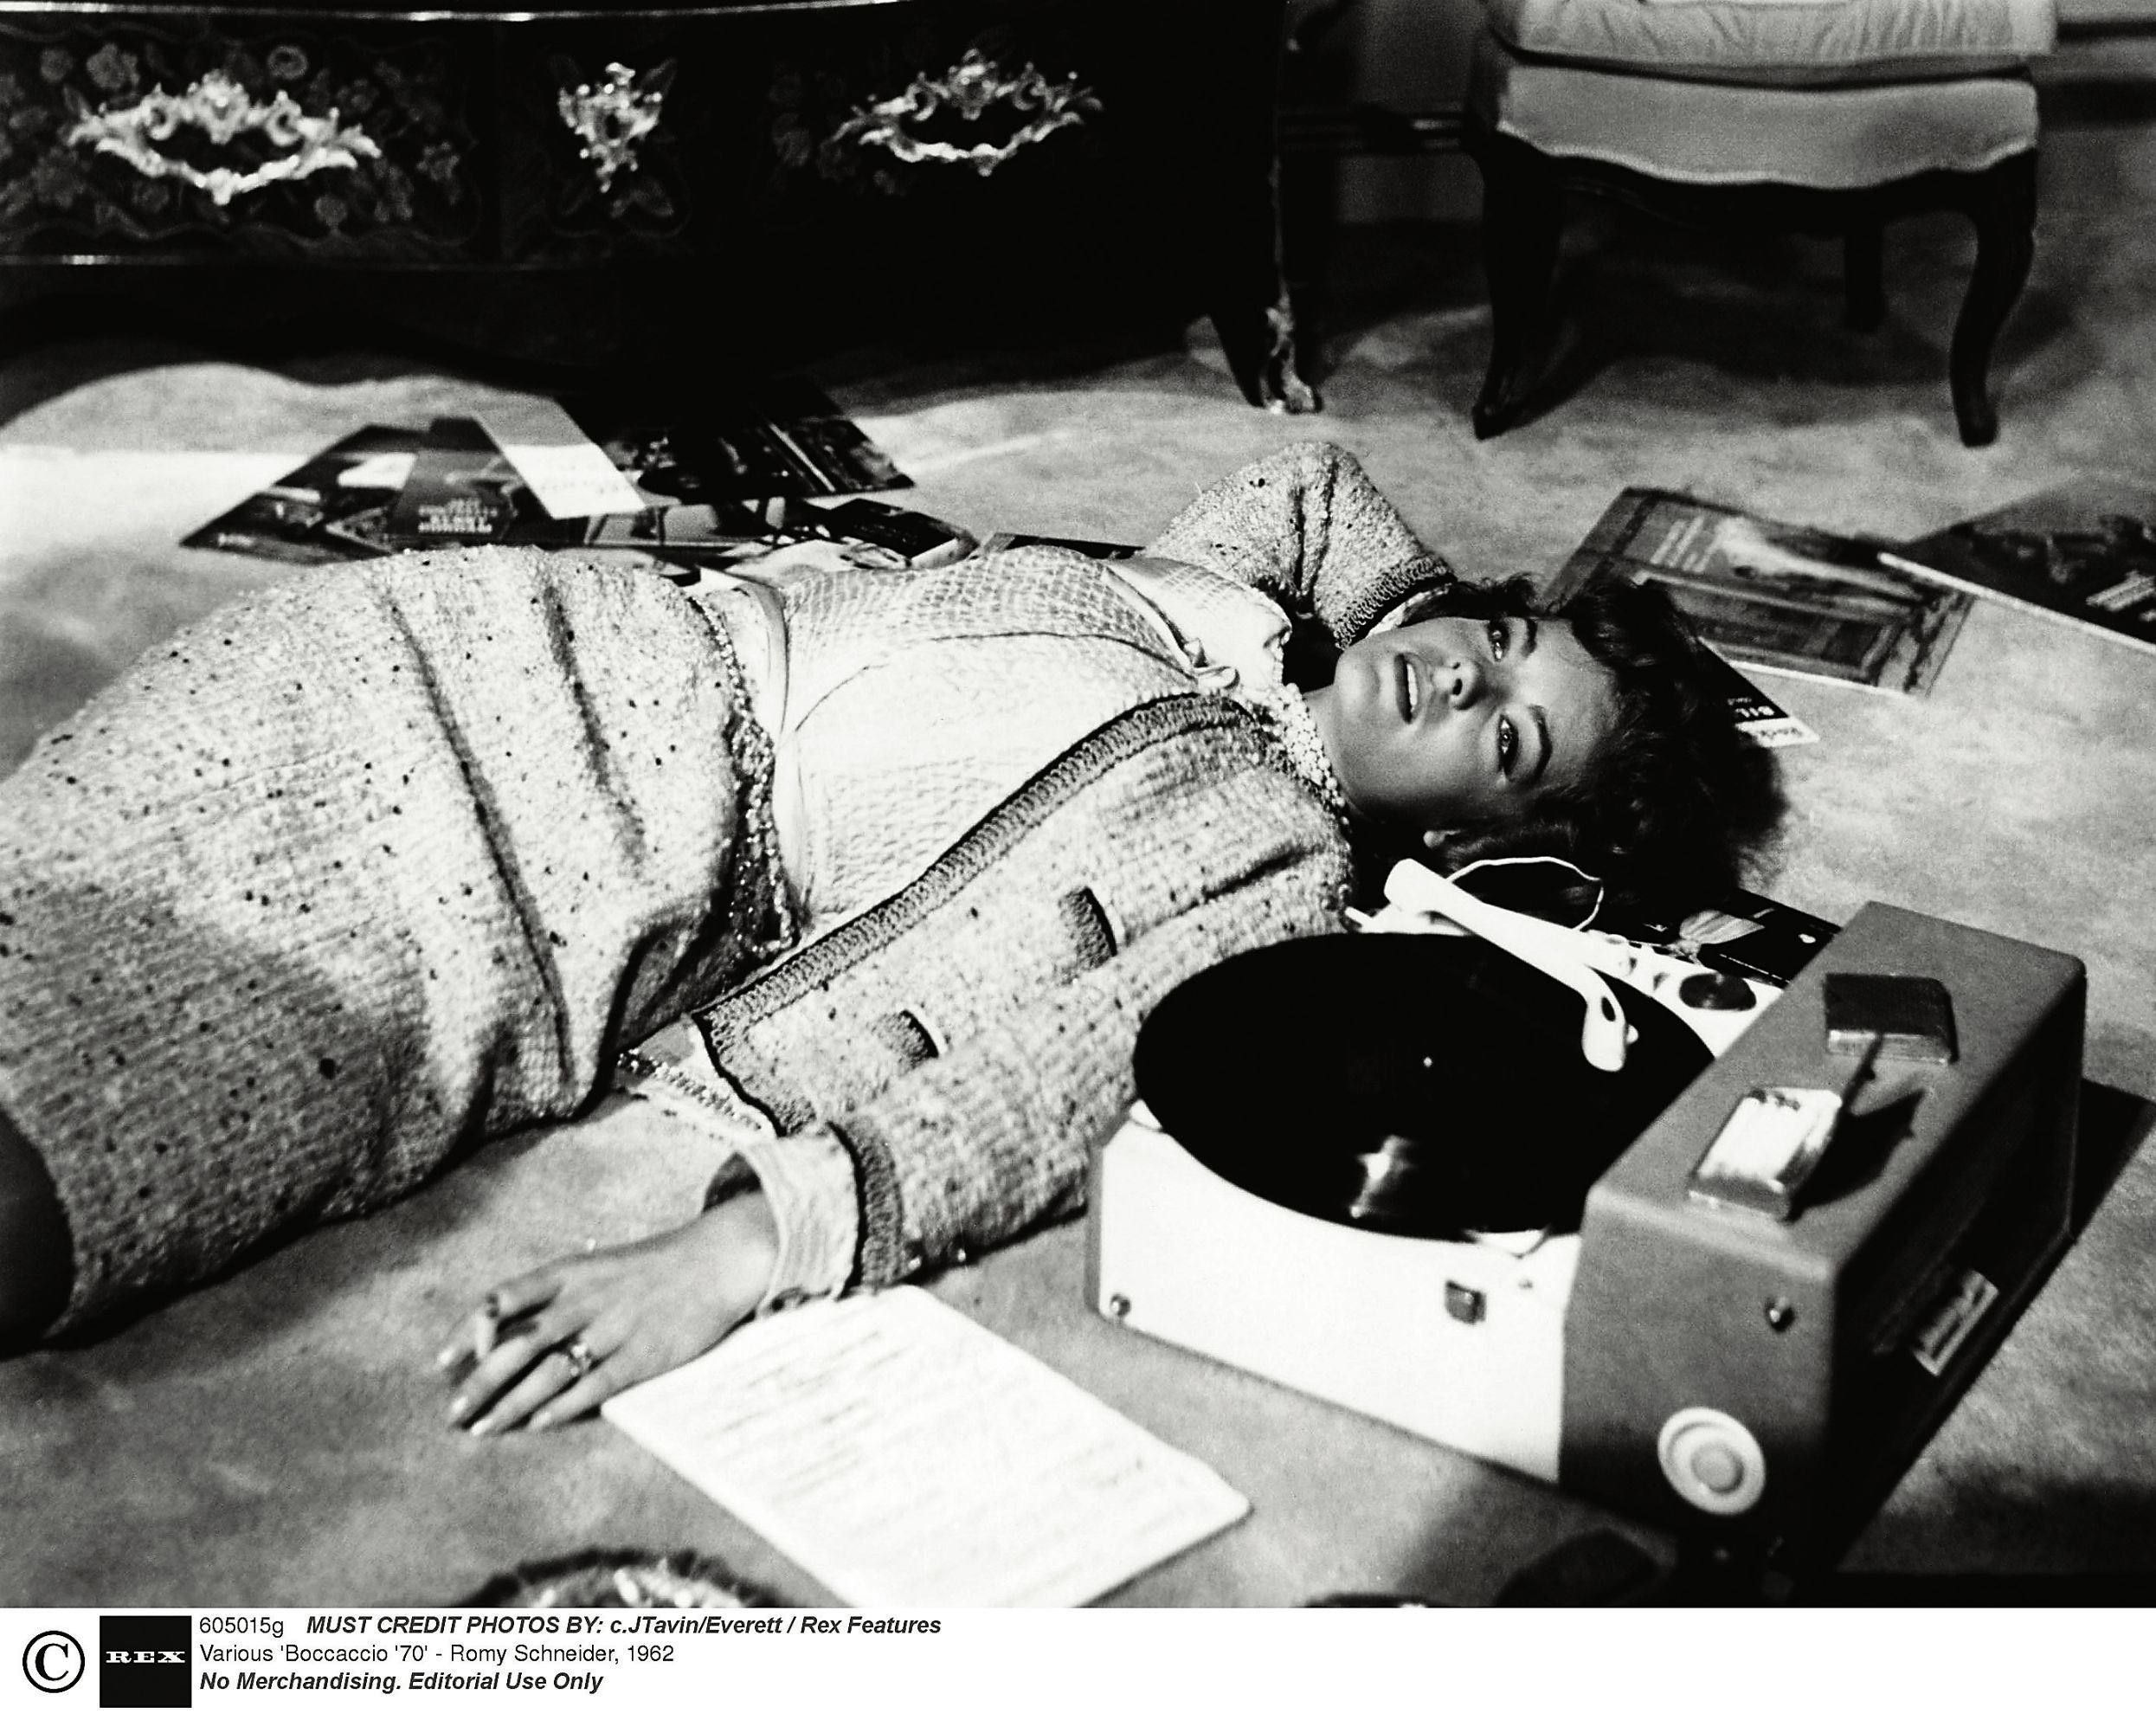 Romy Schneider in Classic Chanel suit, 1962. The suit stands alone, Romy rules the room, but cannot help loving the record player. I need one in my life.